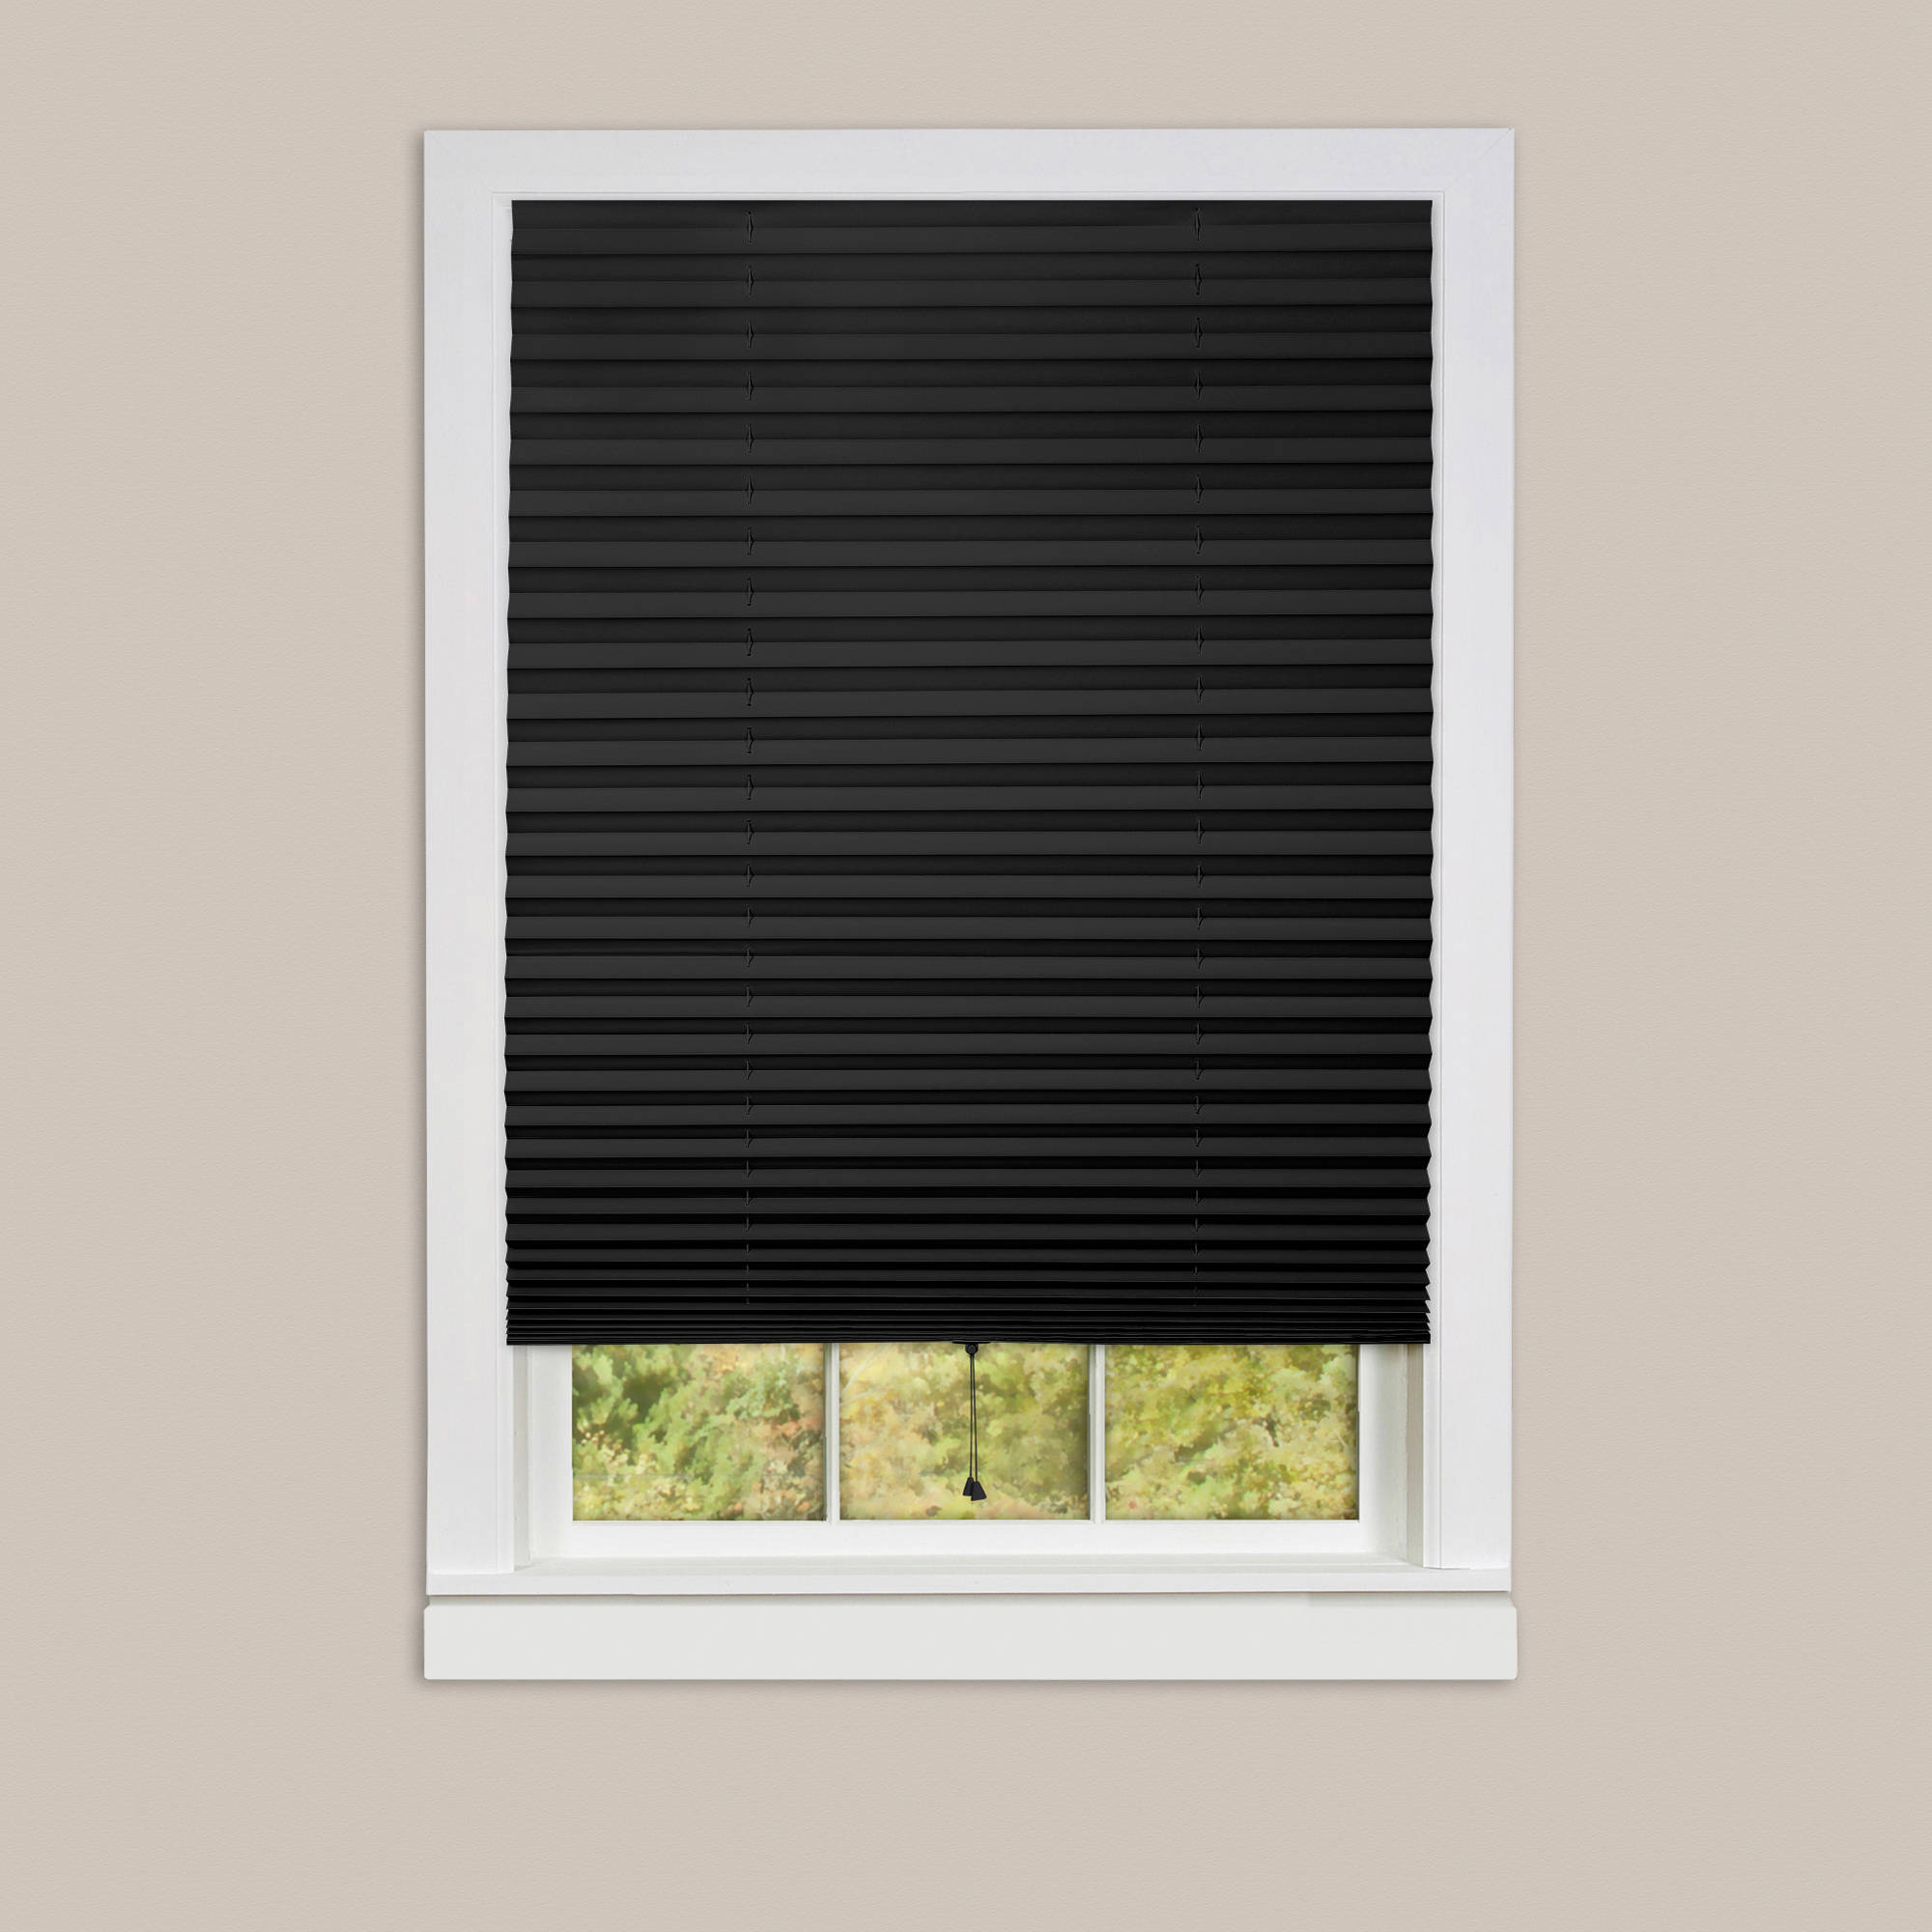 bamboo style blinds outdoor supplier blind vertical new china shades dsc